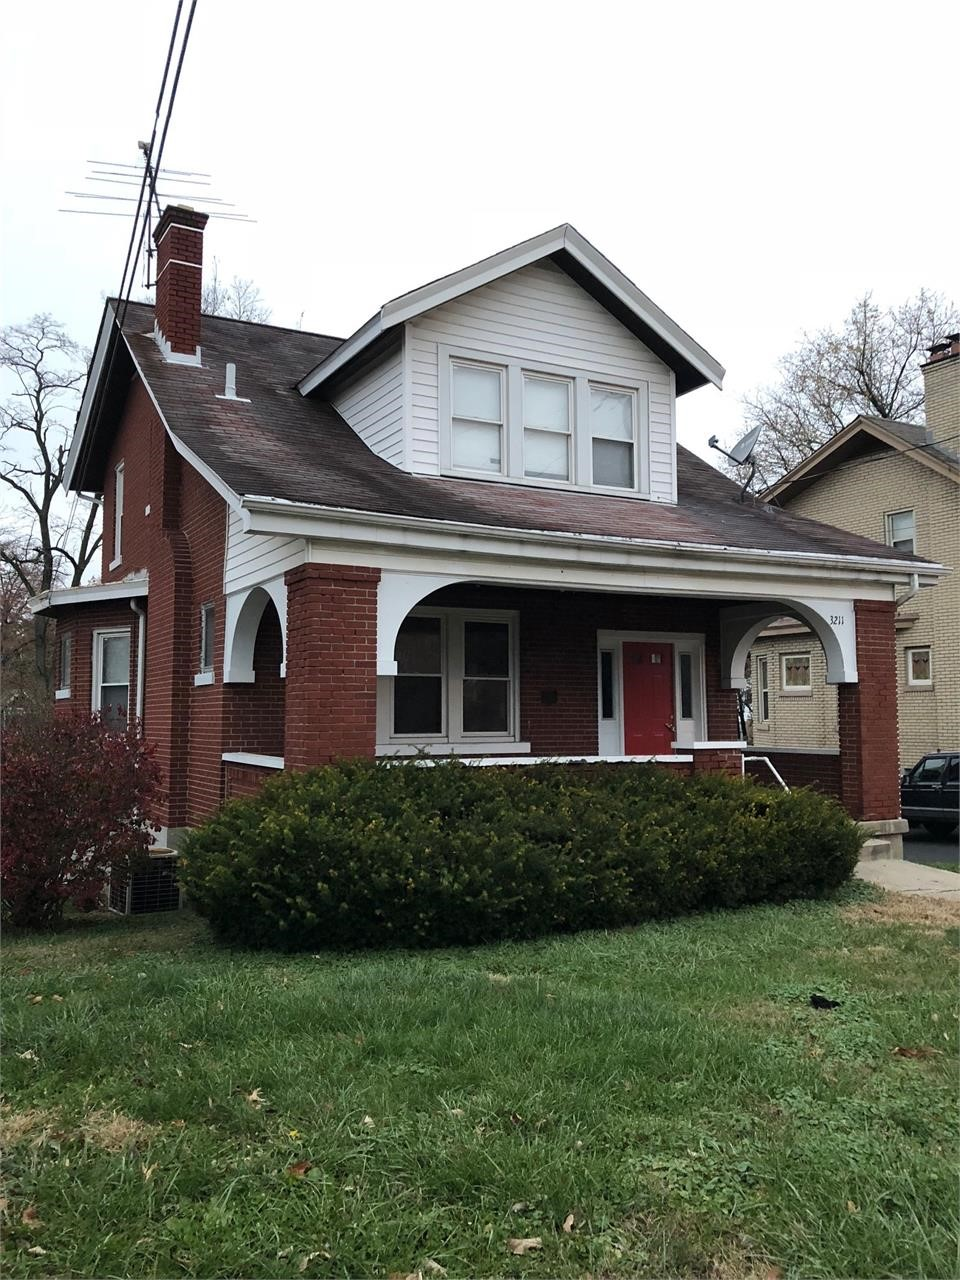 Selling Absolute - 3211 Glenmore Ave., Cincinnati, OH 45211